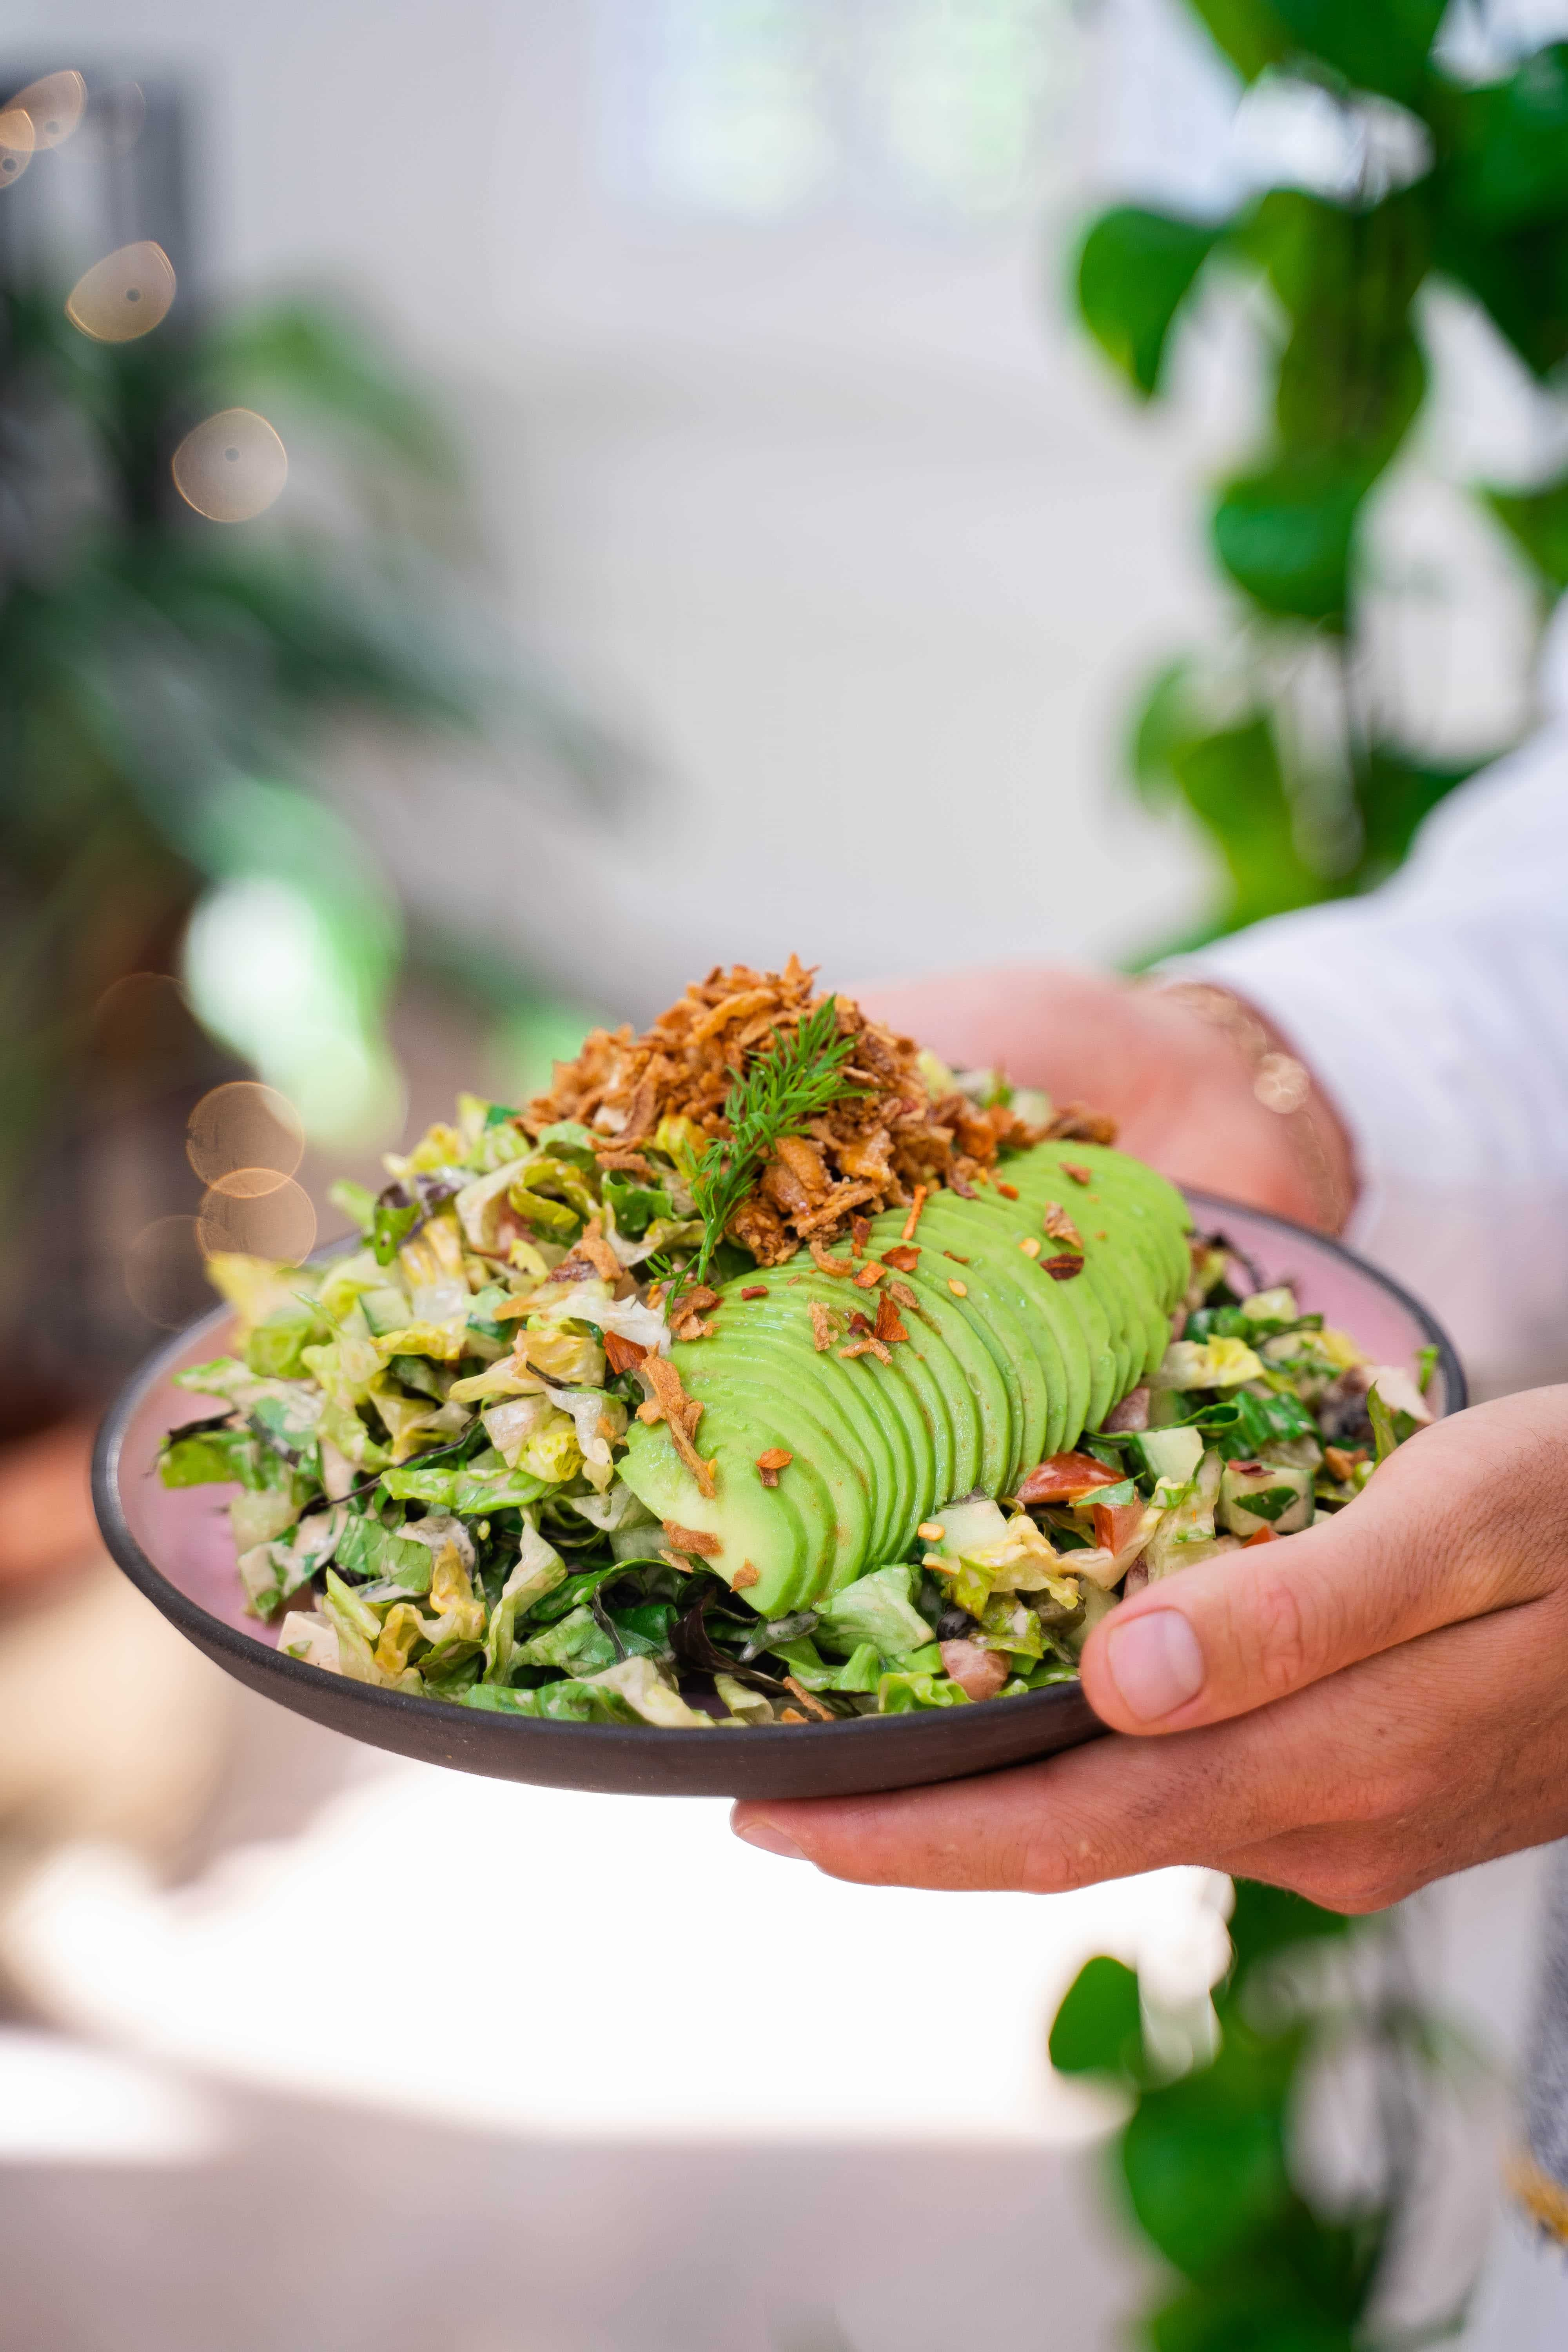 Originating From Los Angeles This Salad Is Chopped So It S Easy To Eat By Business People During Imp In 2020 Chopped Salad Vegan Lunch Recipes Delicious Vegan Recipes